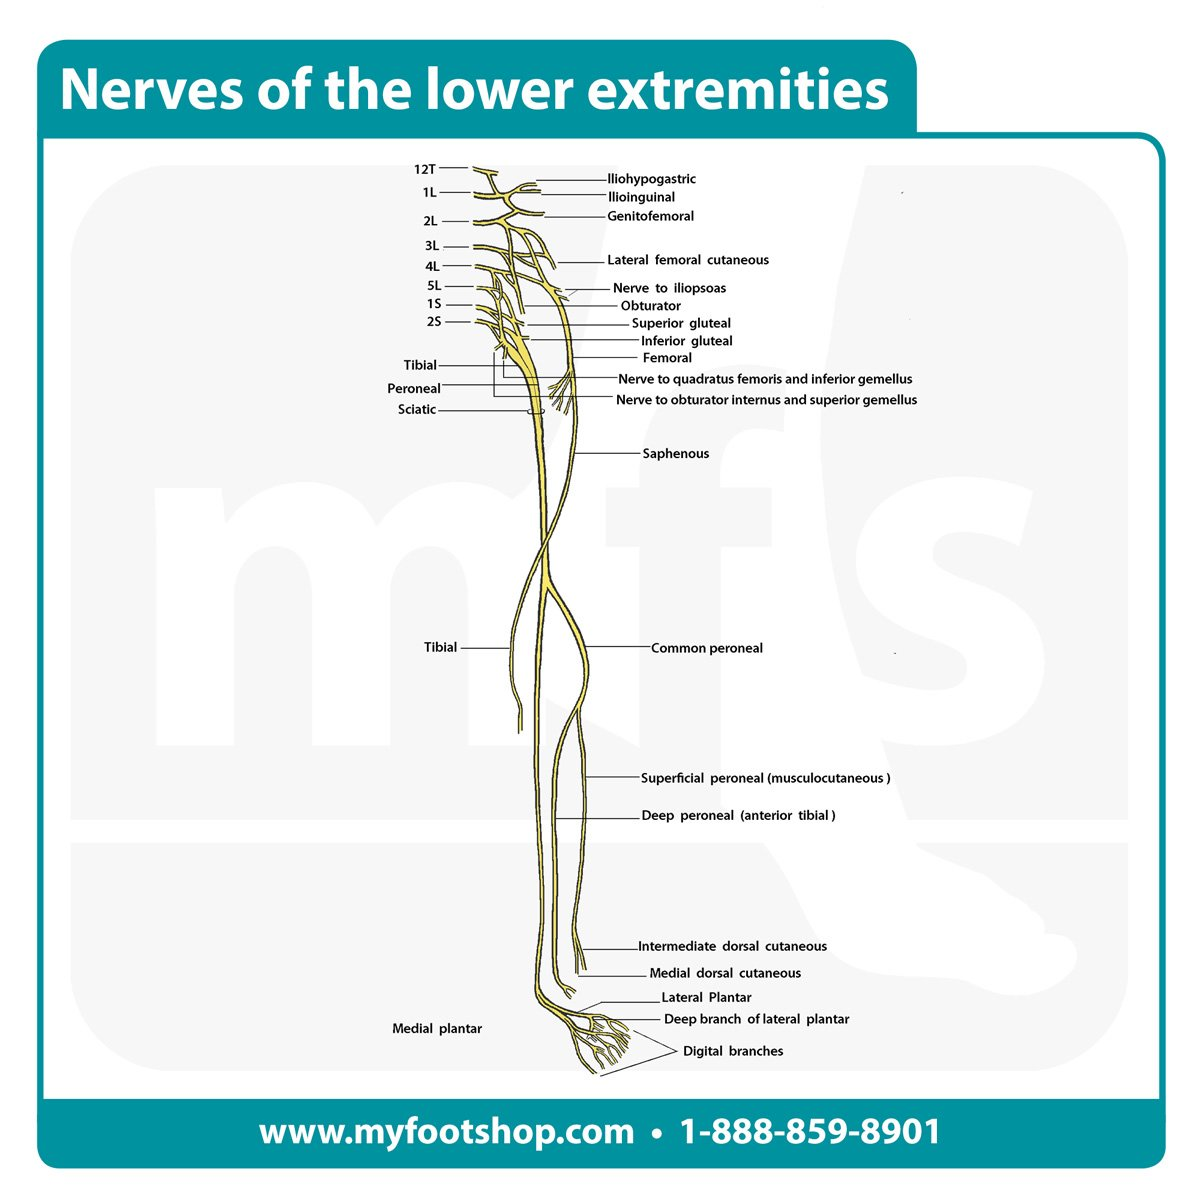 Nerves of the lower extremity